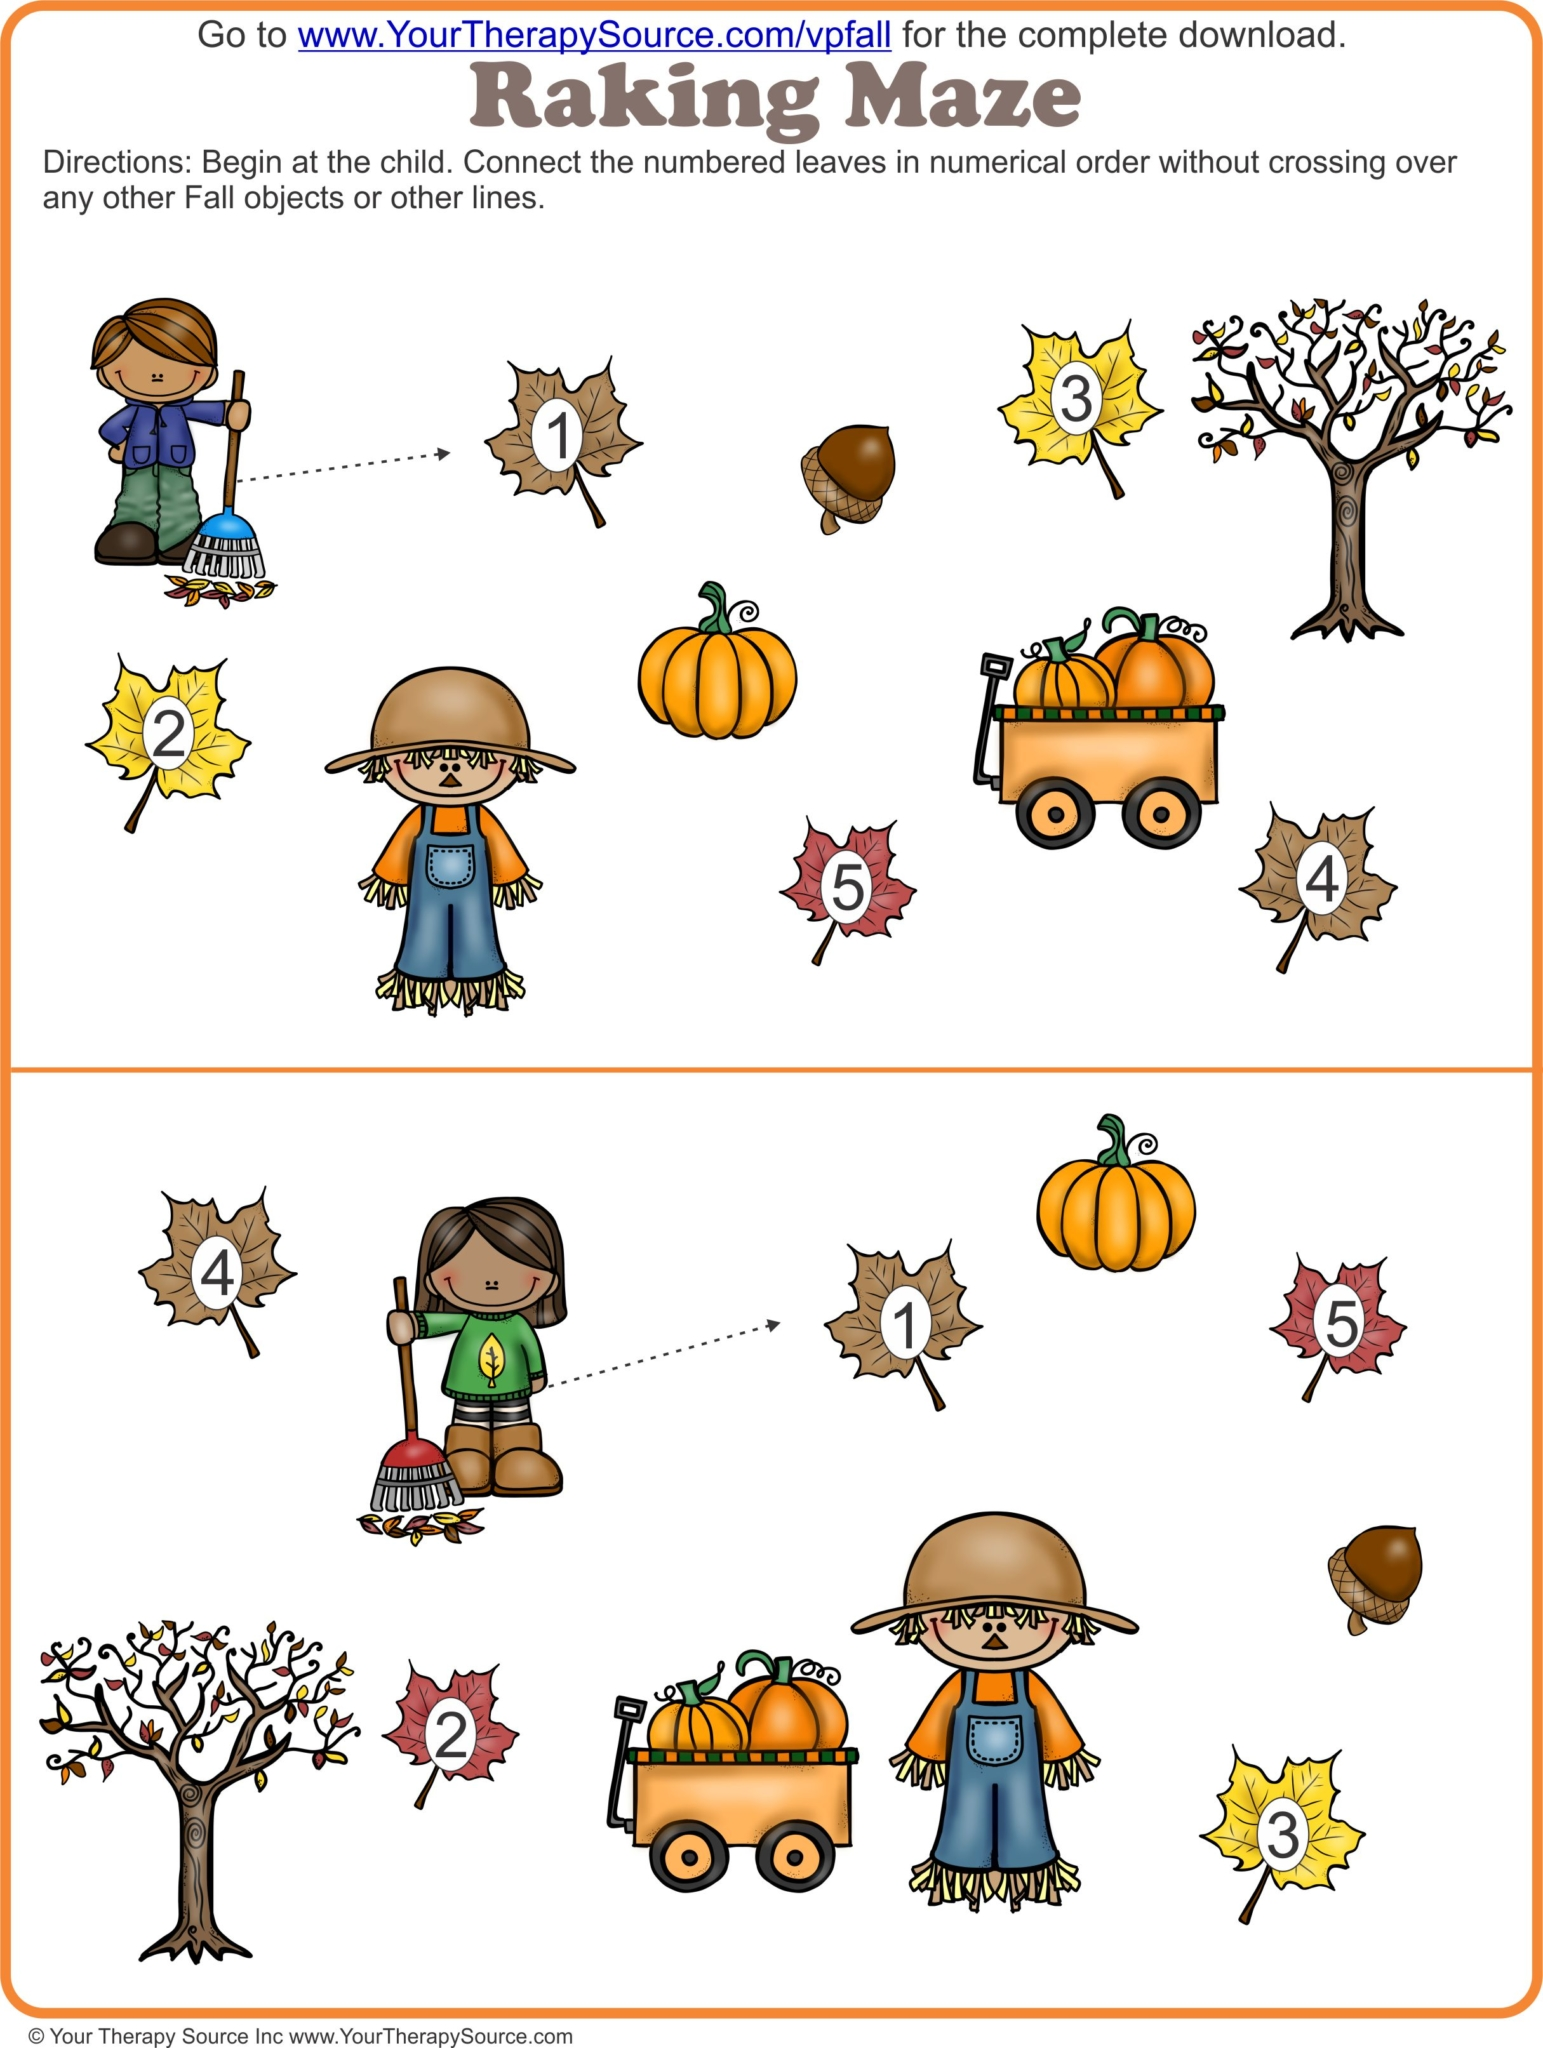 Fall Visual Perceptual Puzzles Freebie from Your Therapy Source - www.YourTherapySource.com/vpfallfreebie